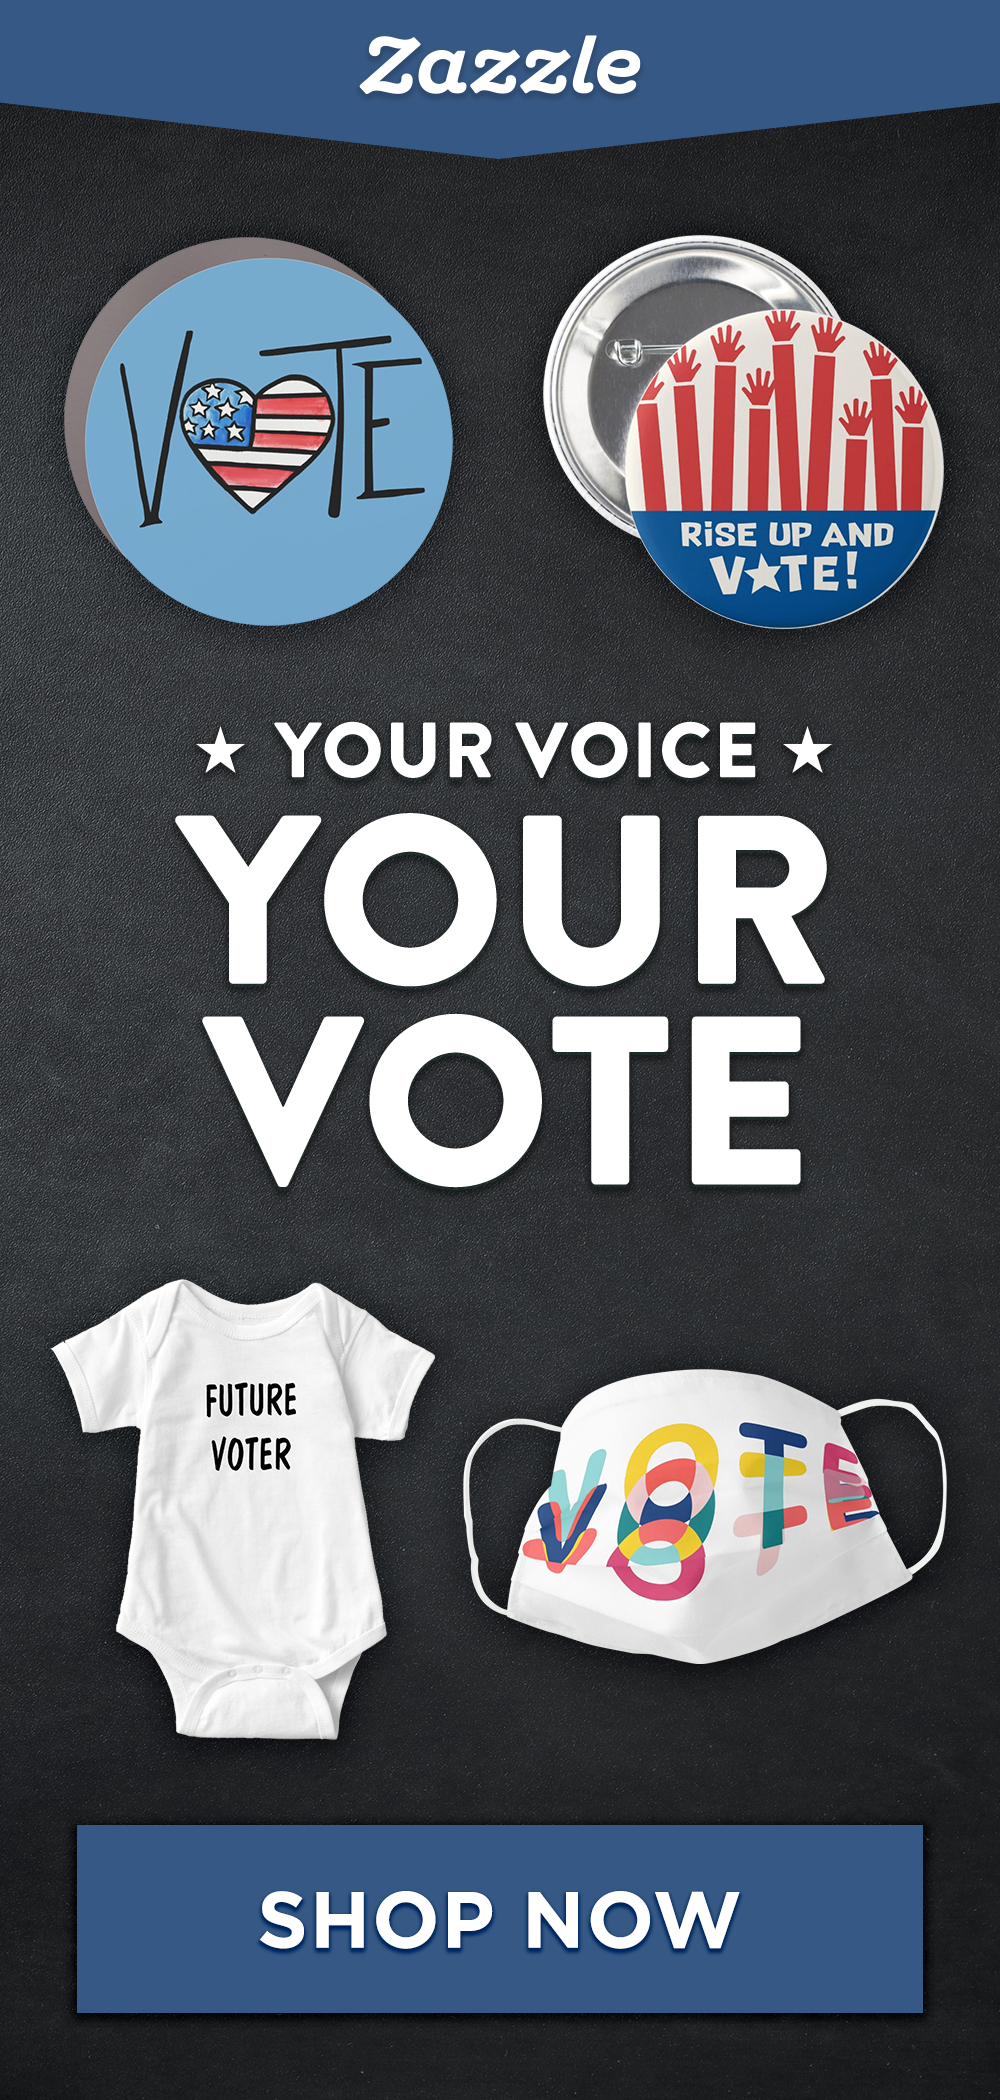 Get your election gear at Zazzle! Shop buttons, apparel, face masks and more to rock the vote or support either candidate.